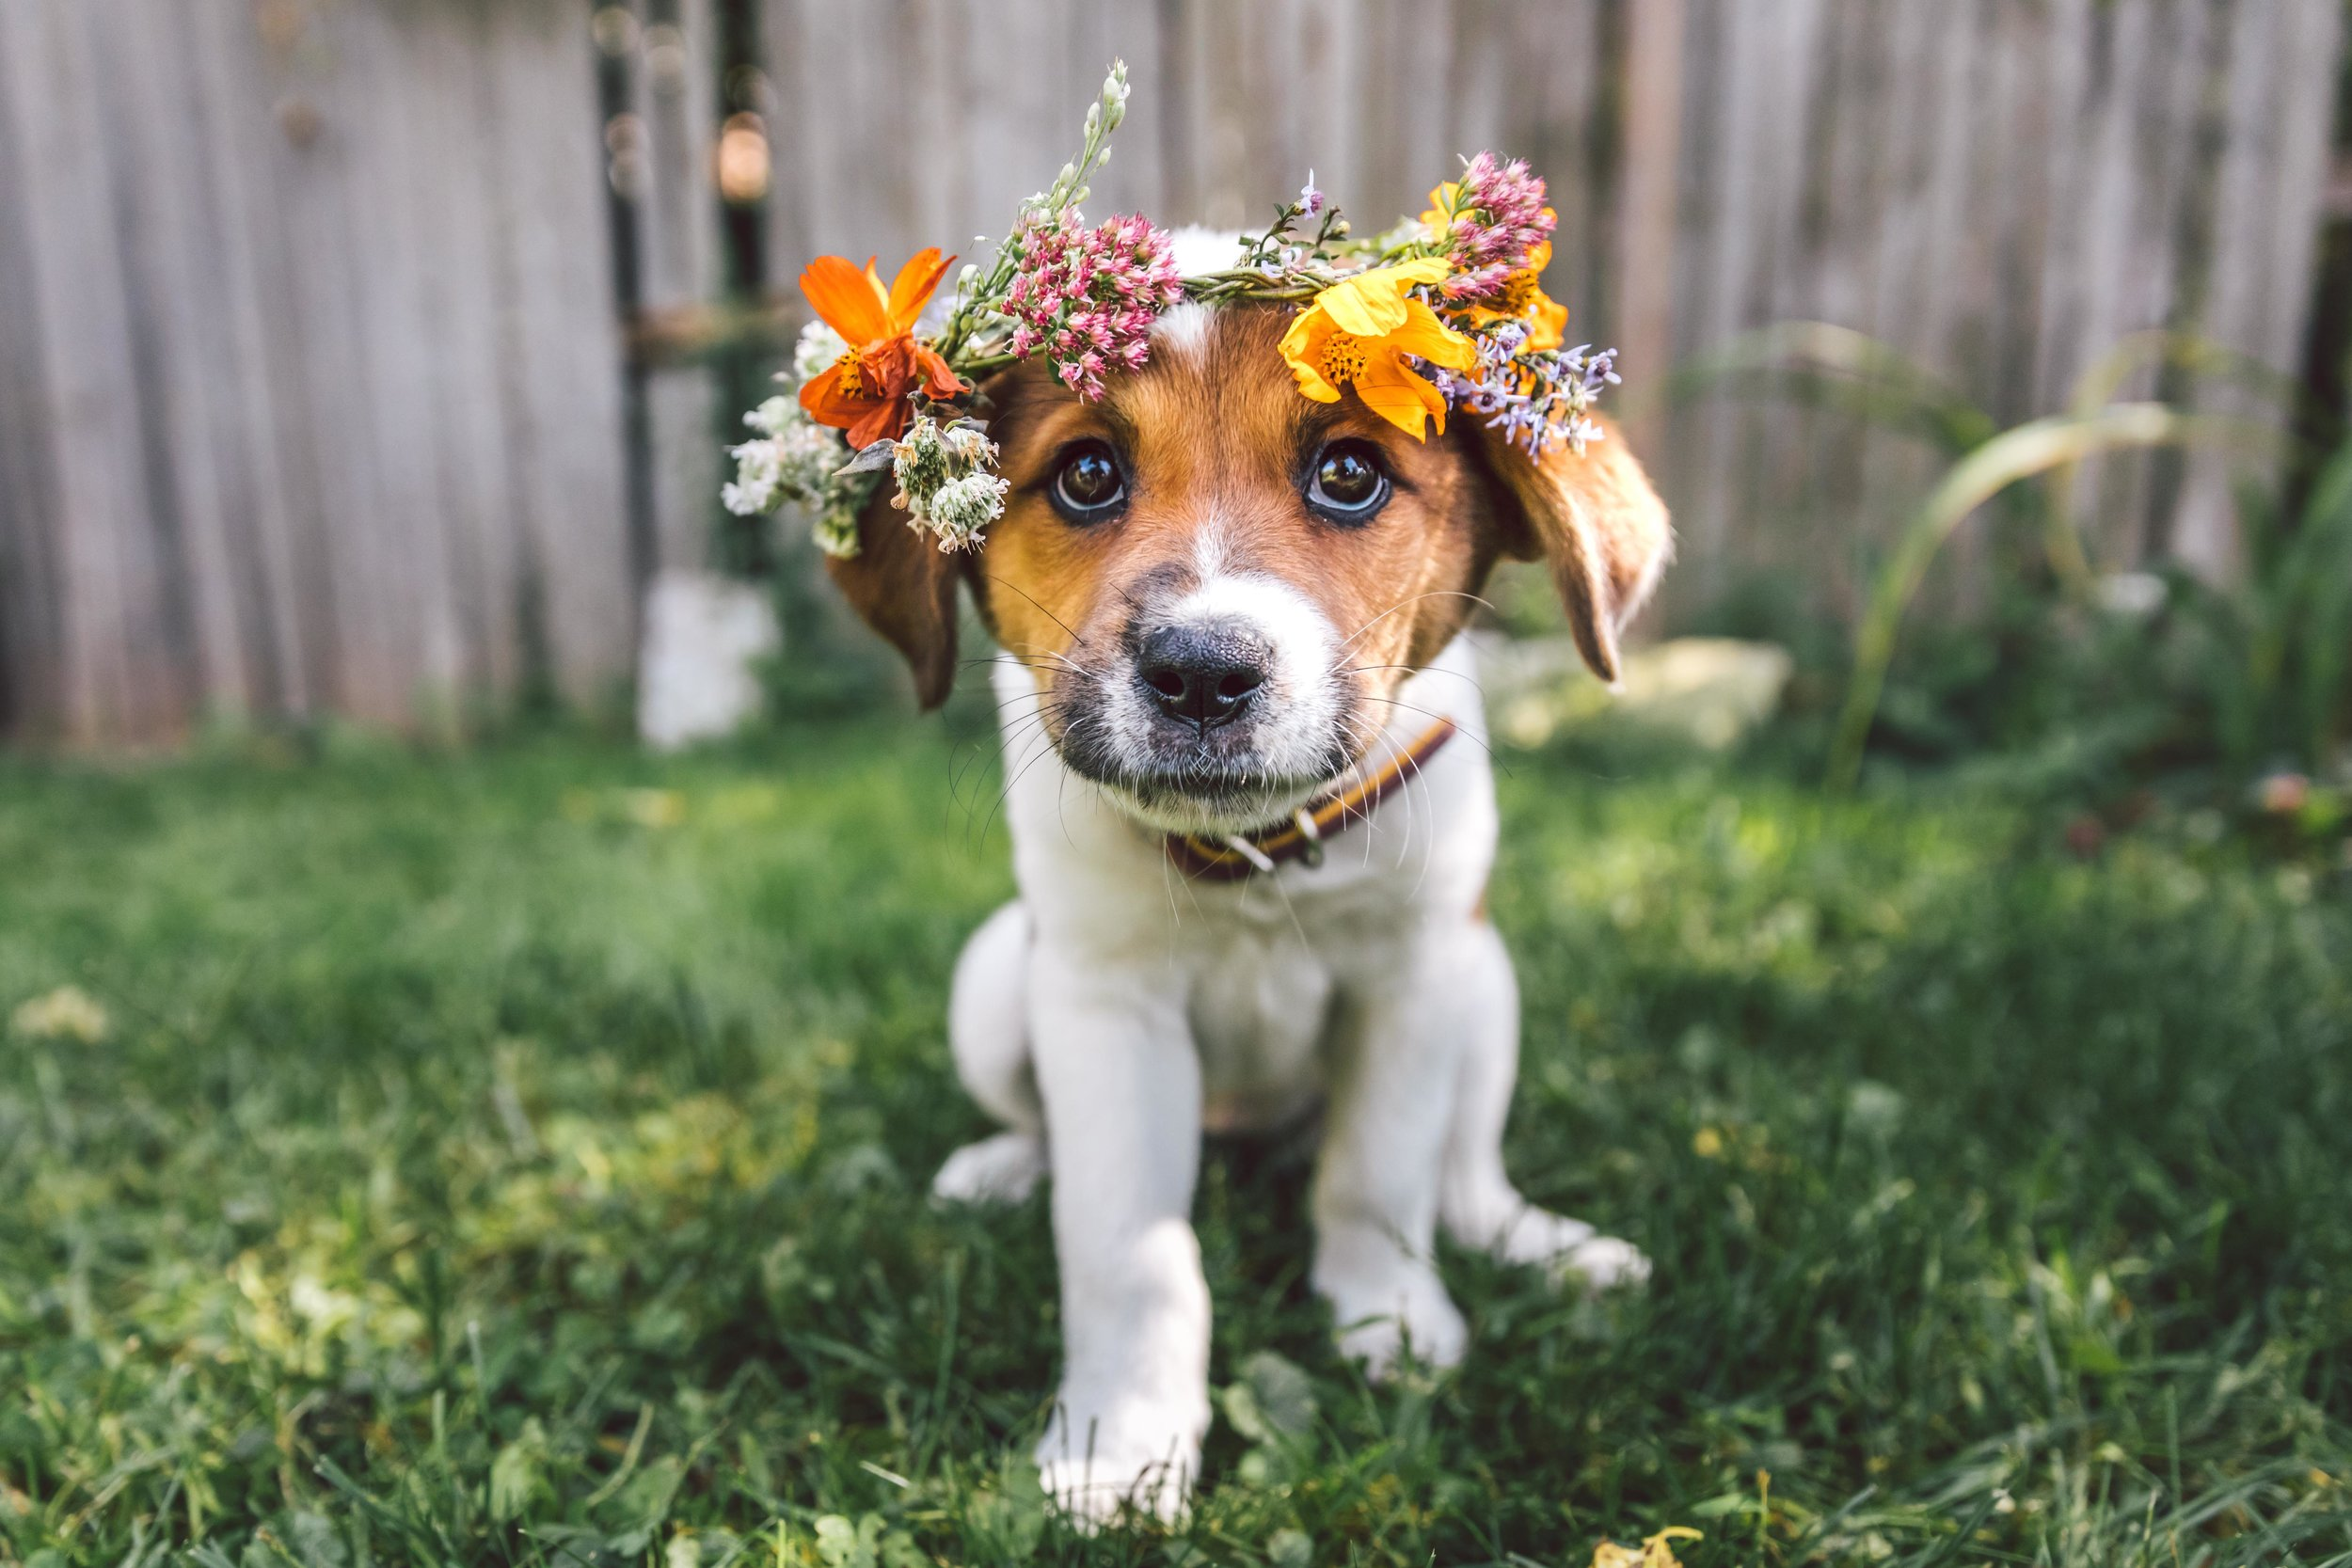 """Poppy had a 14/10 Session! - """"Chris photographed Poppy at Red Bud Isle. We had such a great time and loved how the photos came out. A dog + people session is next!""""See Poppy's Entire Session"""